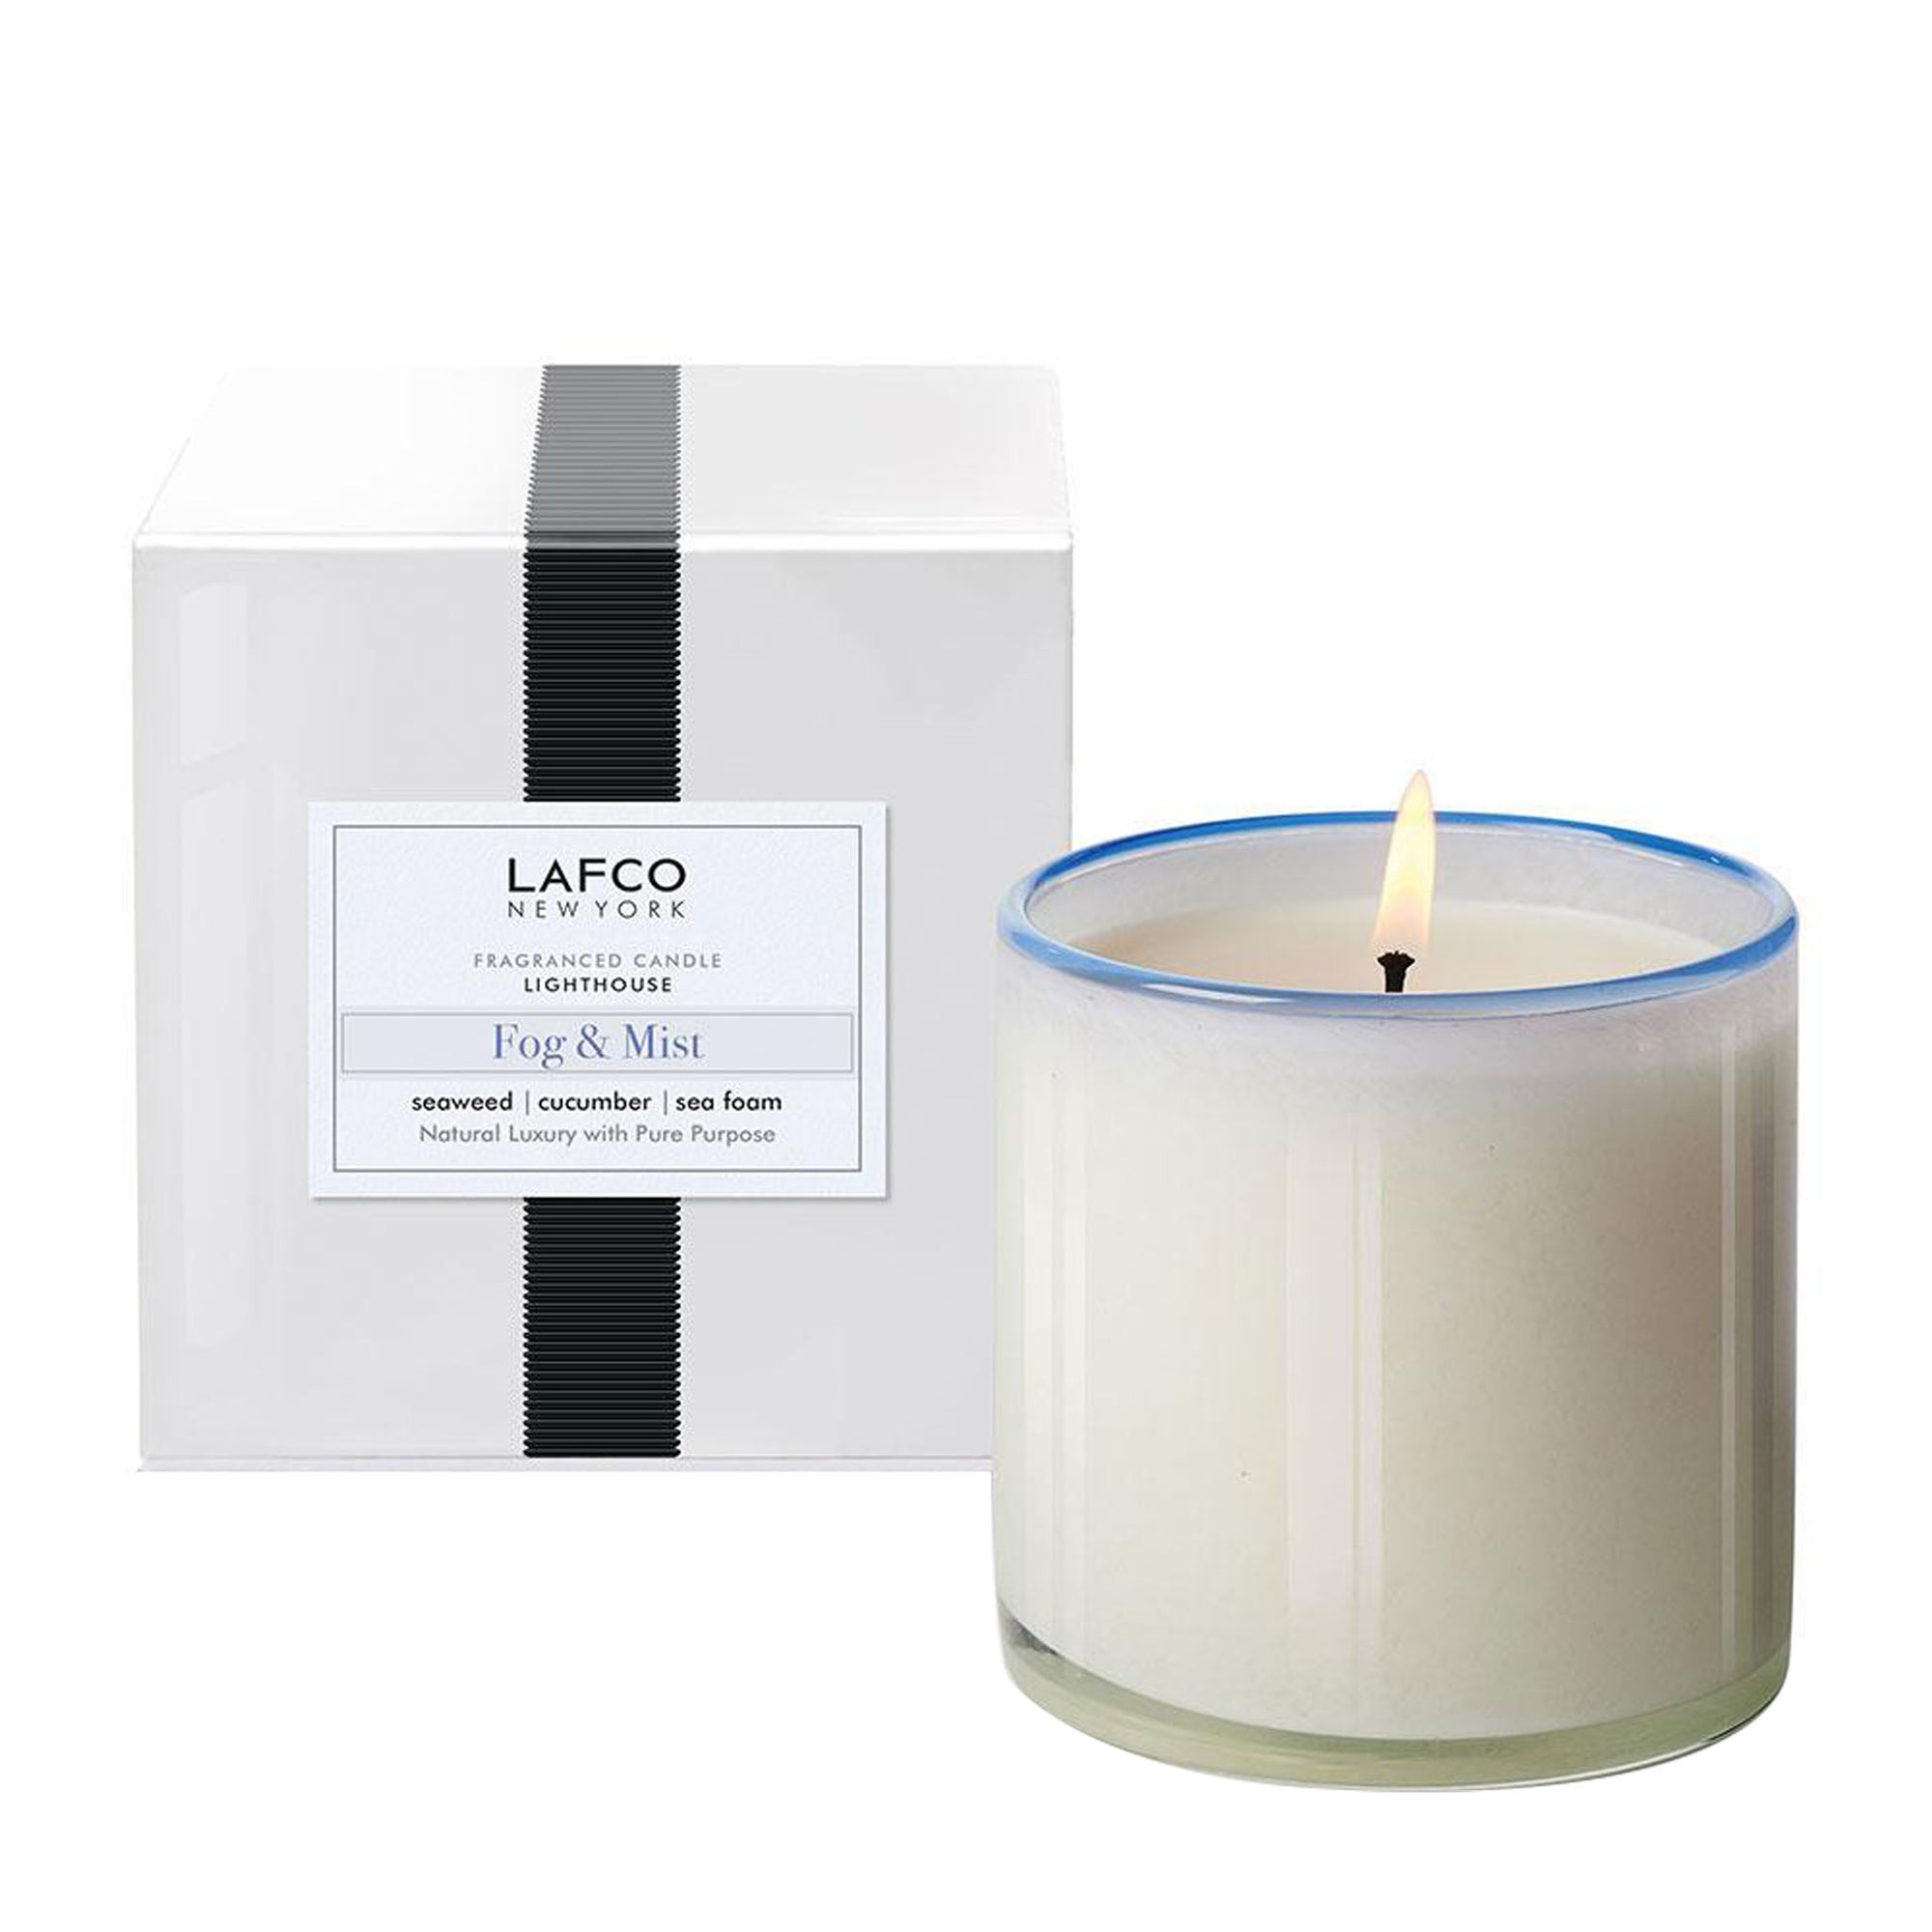 Lafco Lighthouse | Fog & Mist Candle